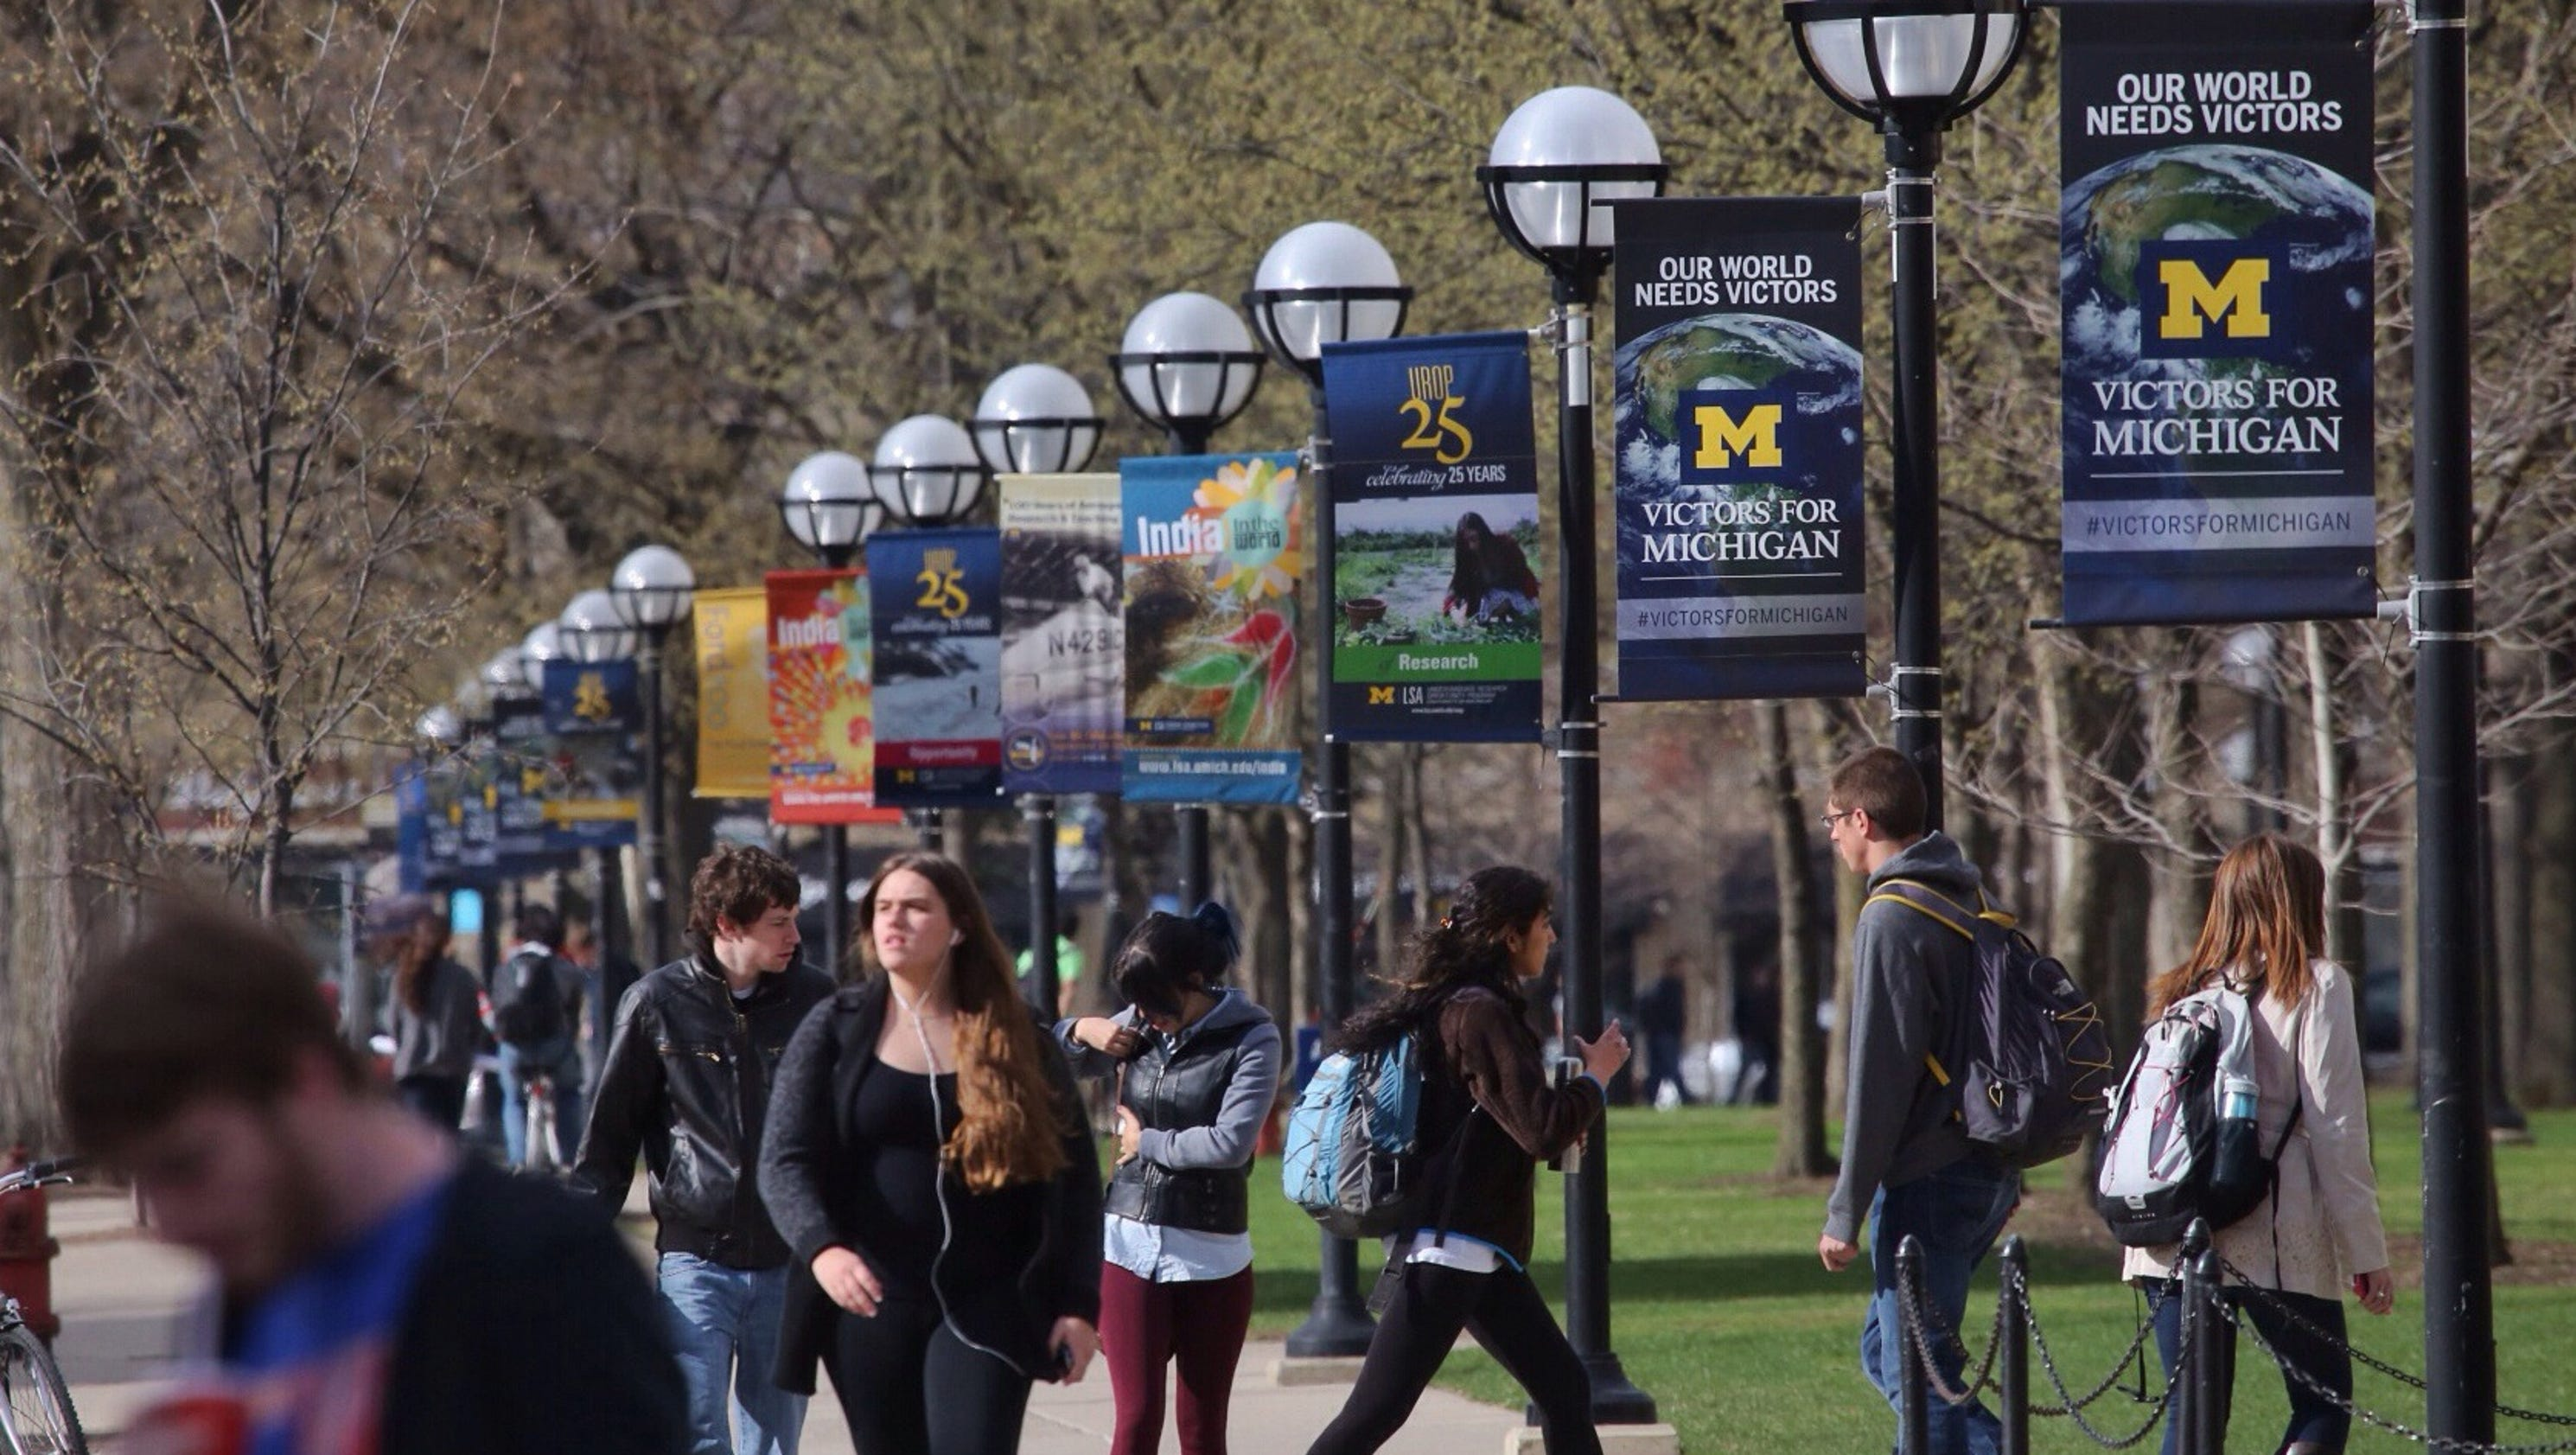 University of Michigan to offer free tuition to in-state students whose families make under $65,000 a year